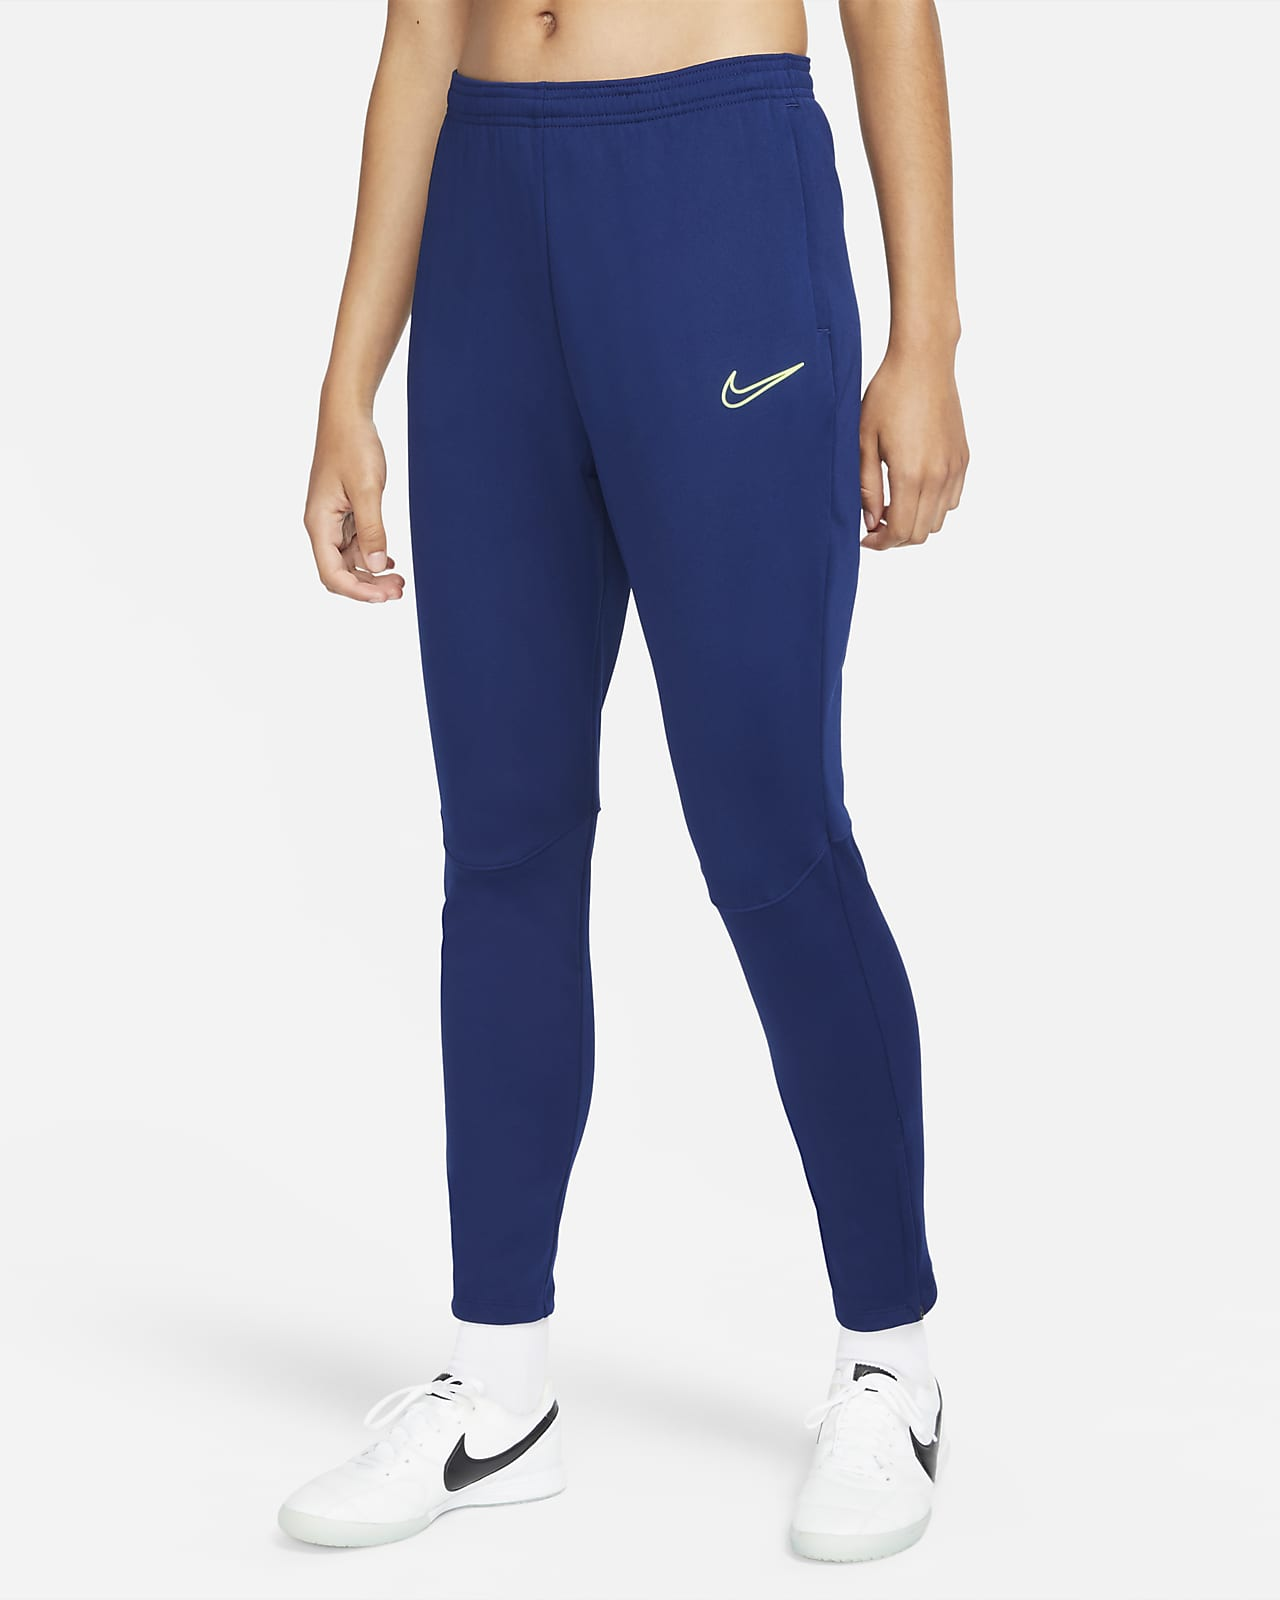 Nike Therma-FIT Academy Winter Warrior Women's Knit Soccer Pants